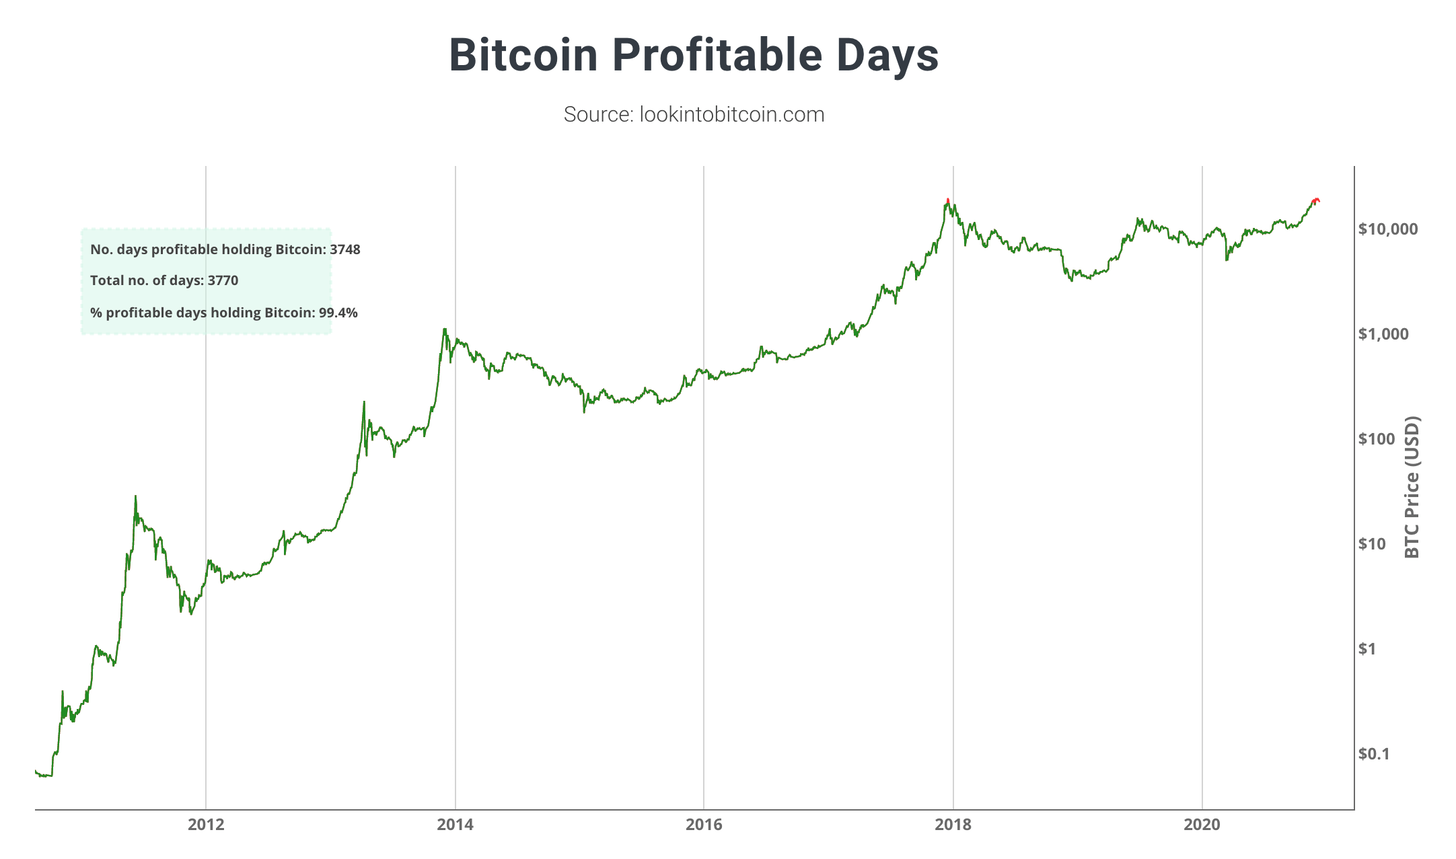 Bitcoin Profitable Days